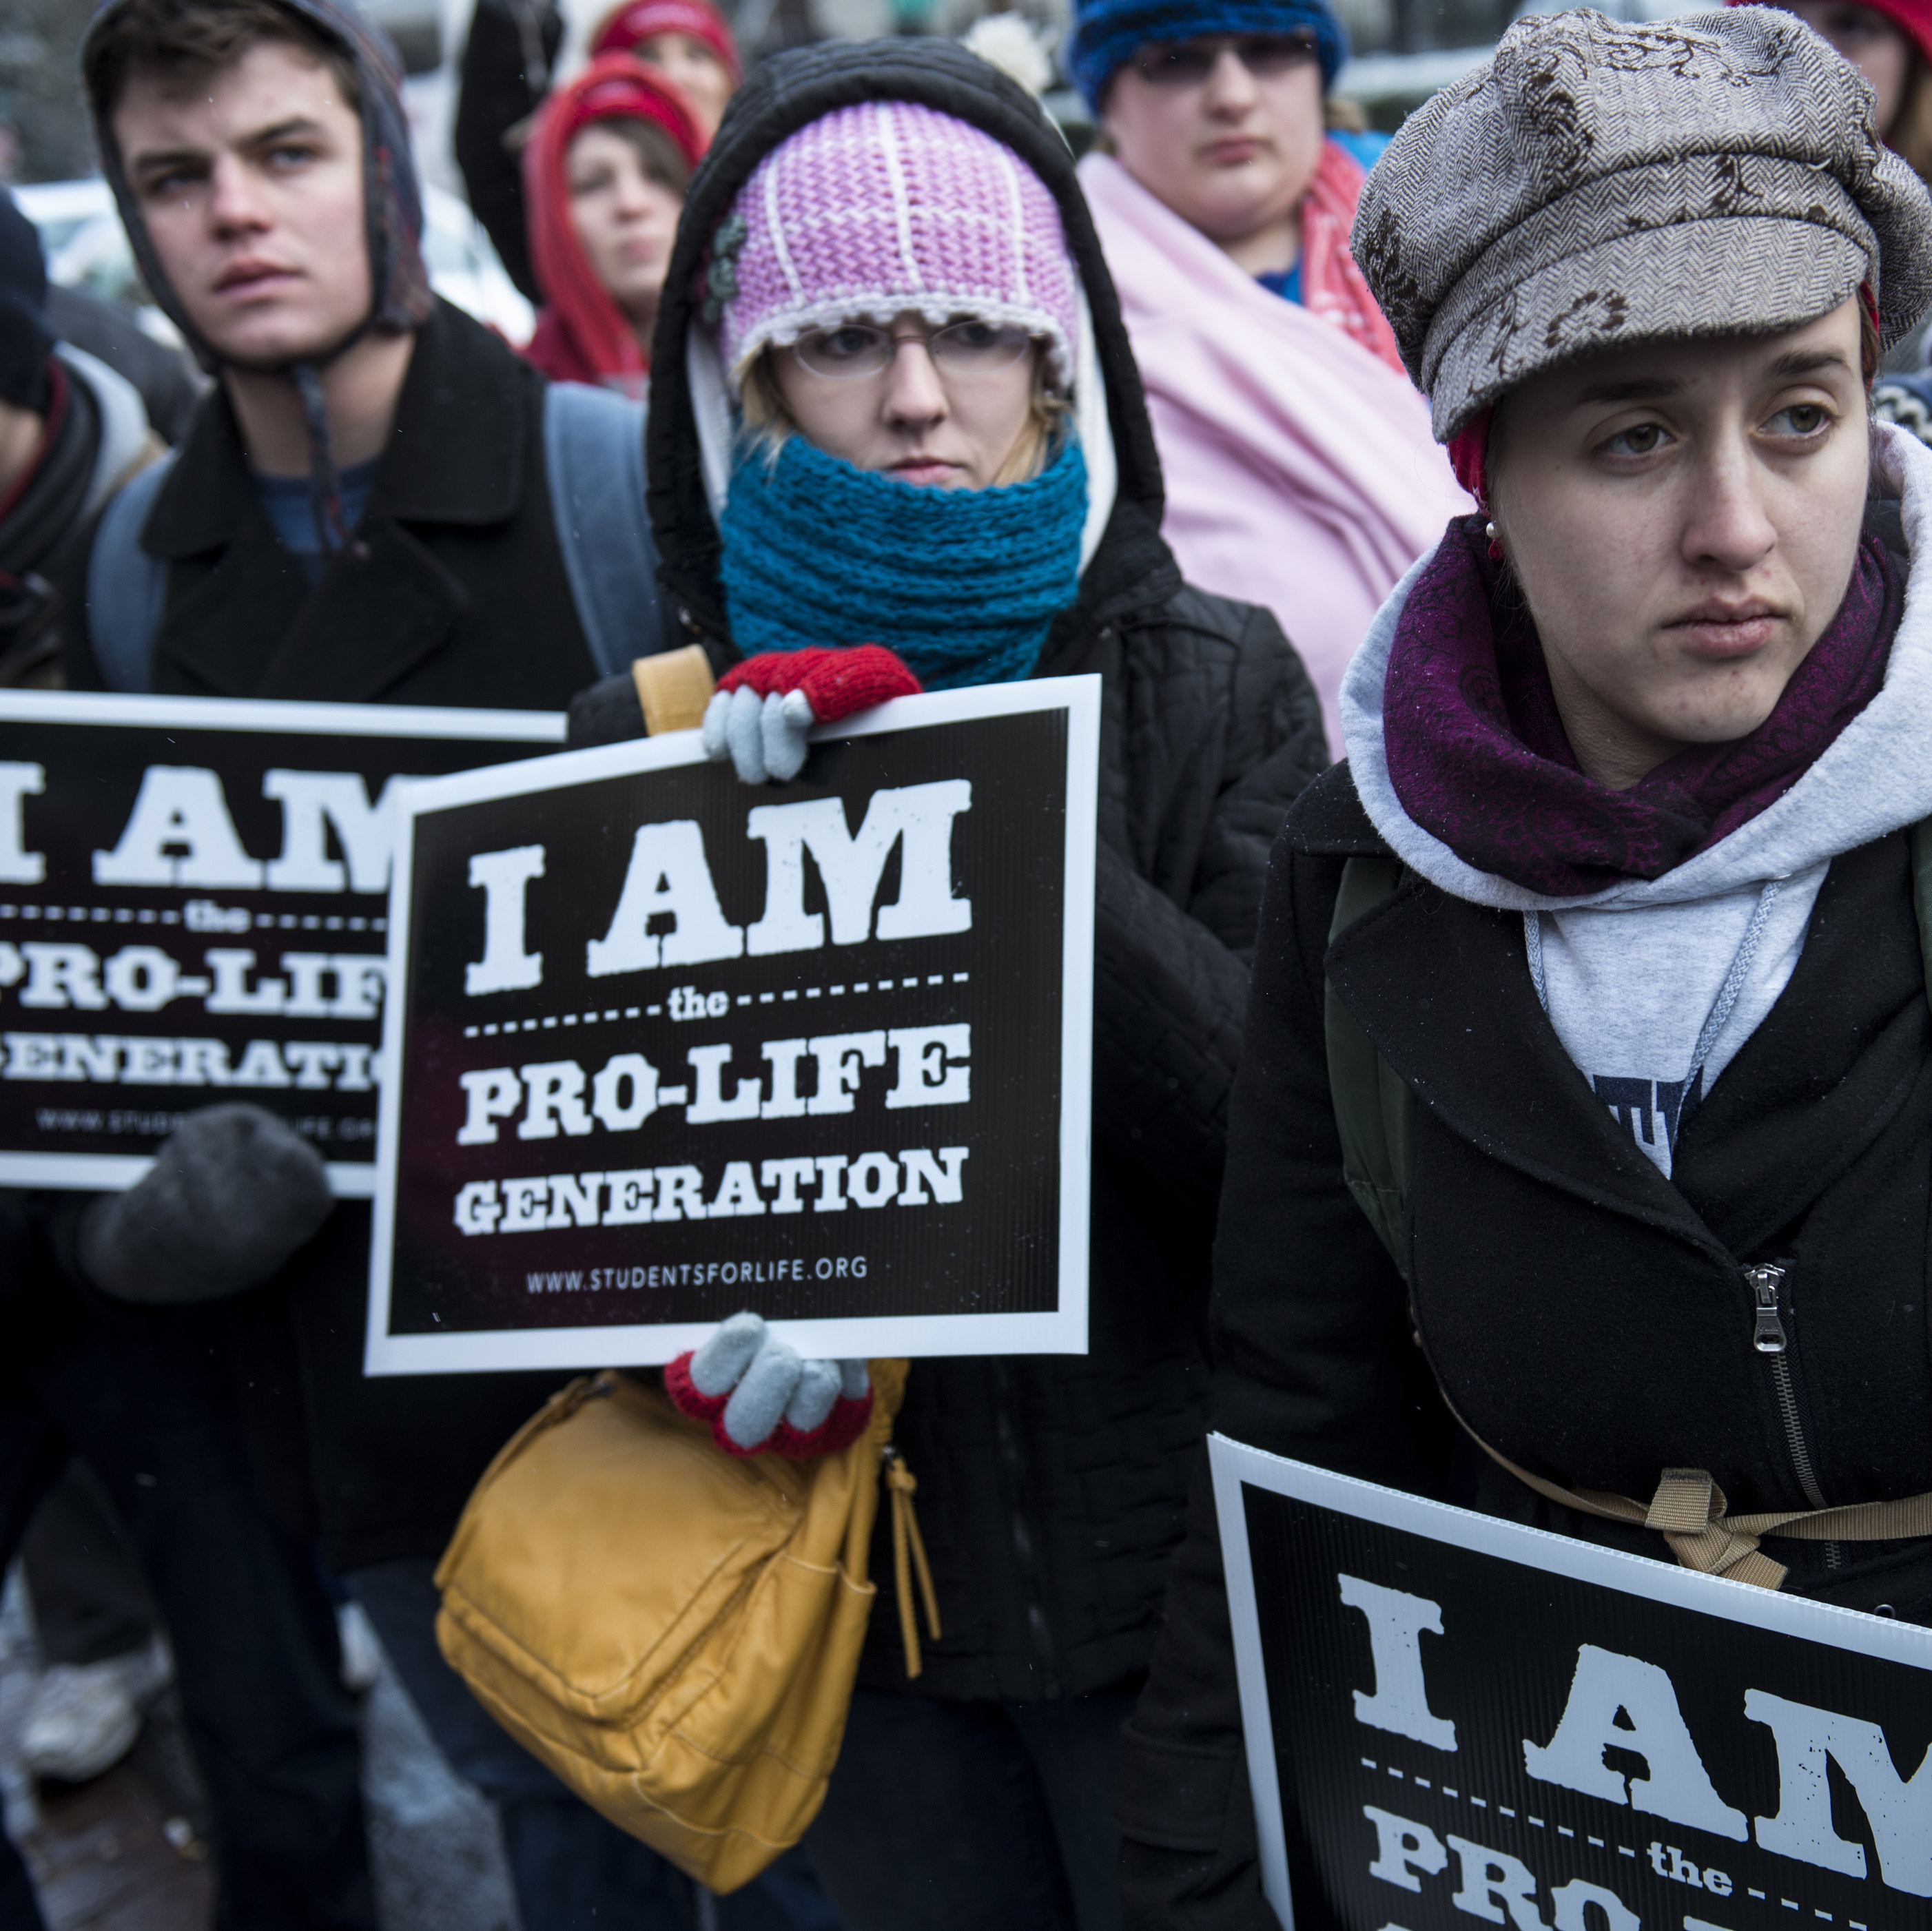 Anti-abortion activists at a protest Thursday outside the offices of Planned Parenthood in Washington, D.C. Friday, hundreds of thousands are expected at the March for Life rally.